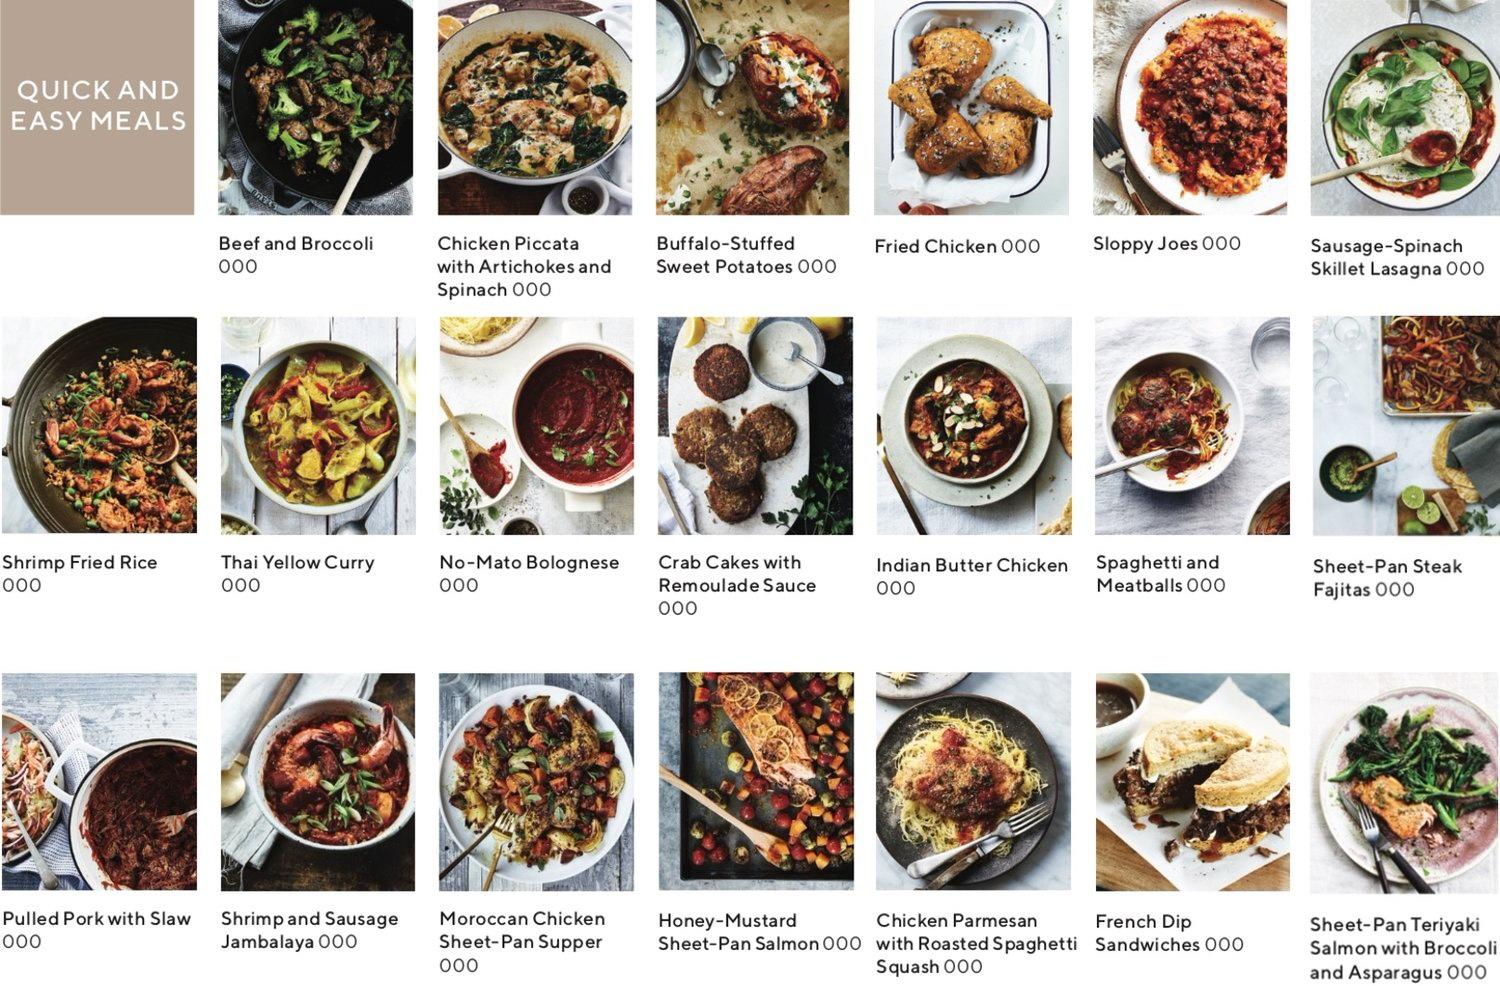 recipe index showing images of recipes that are quick and easy meals